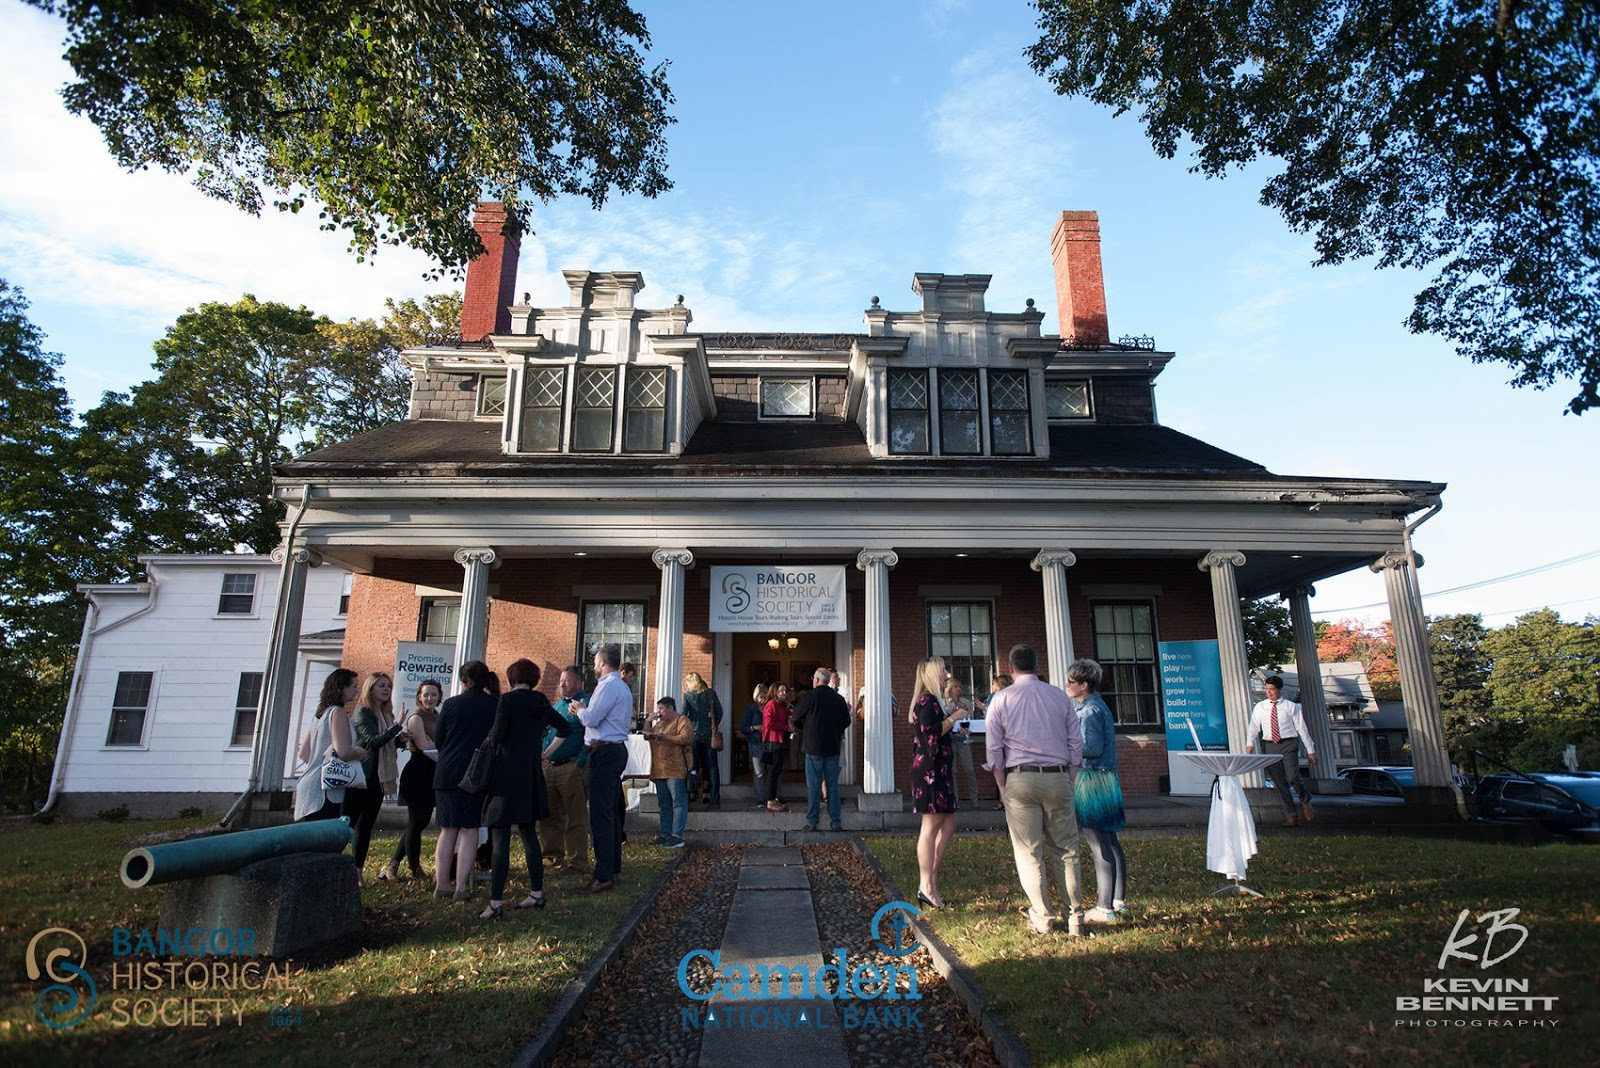 Take a Tour of Bangor, Maine with the Bangor Historical Society!